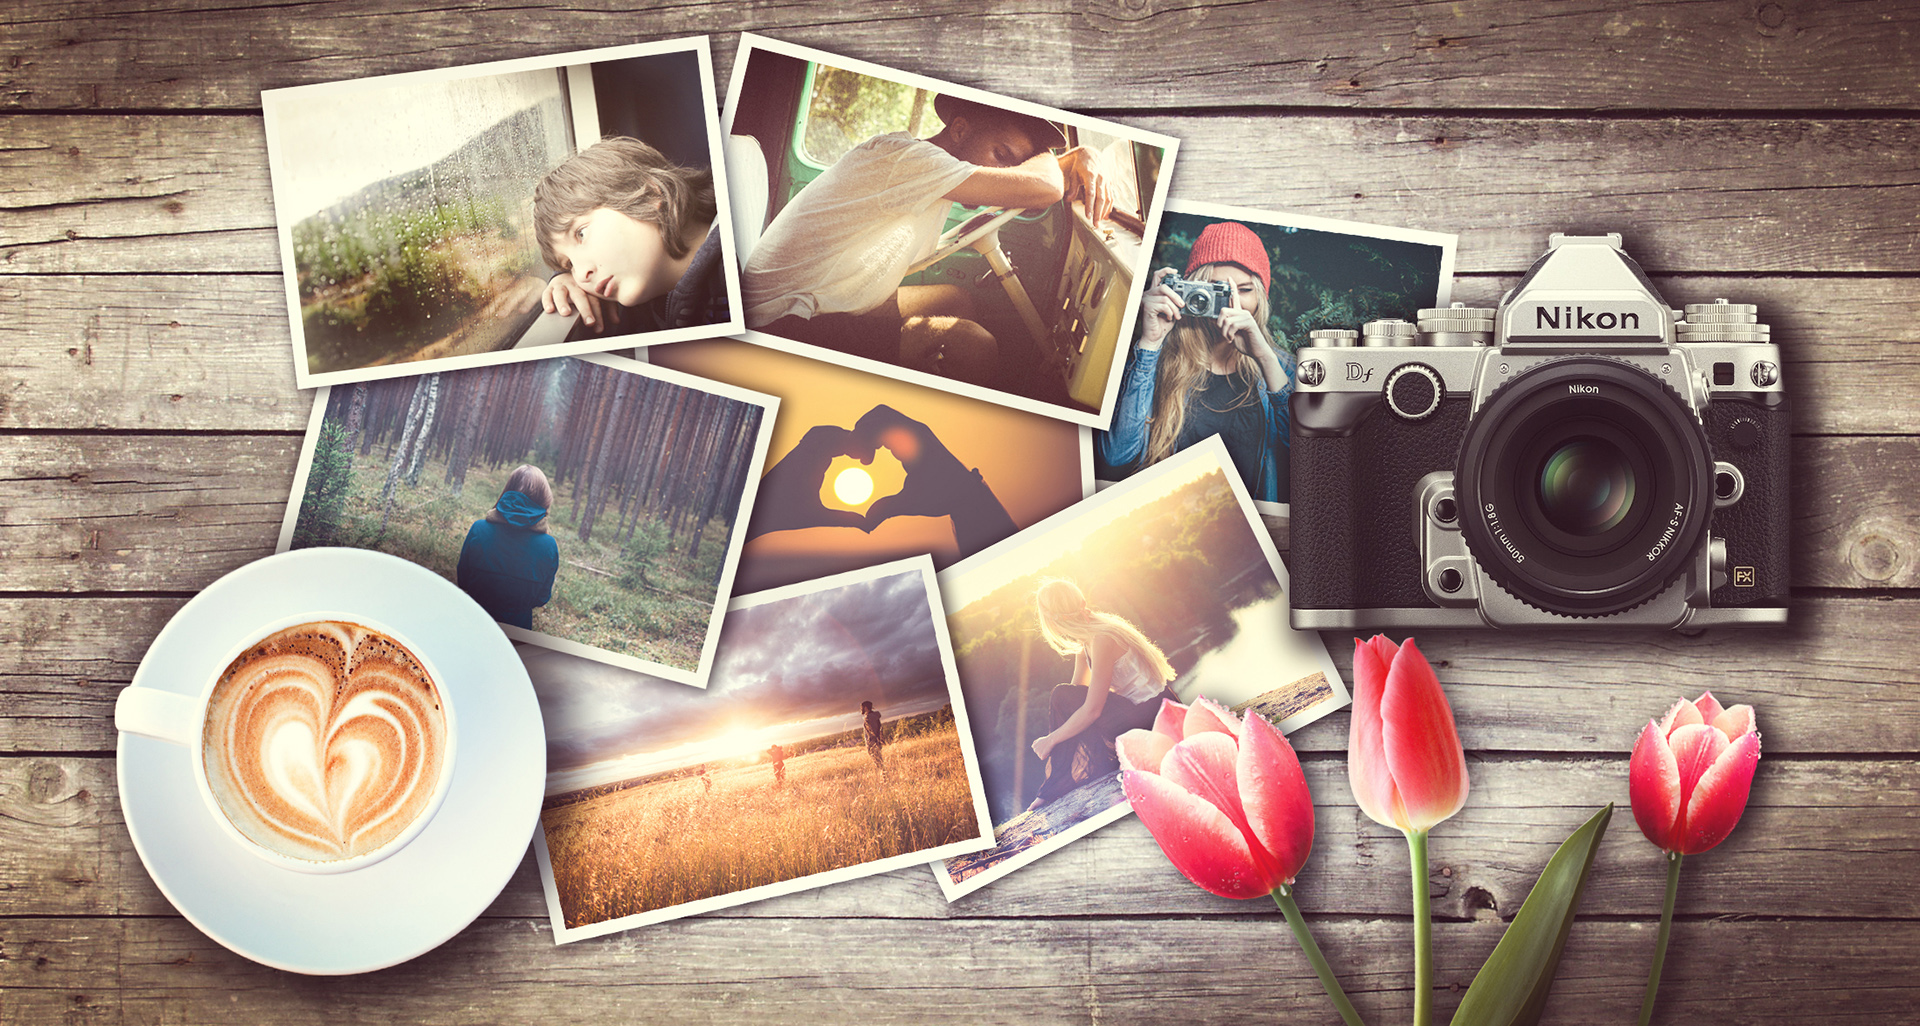 How to create amazing photo collage in photoshop photoshop tutorials how to create amazing photo collage in photoshop baditri Choice Image